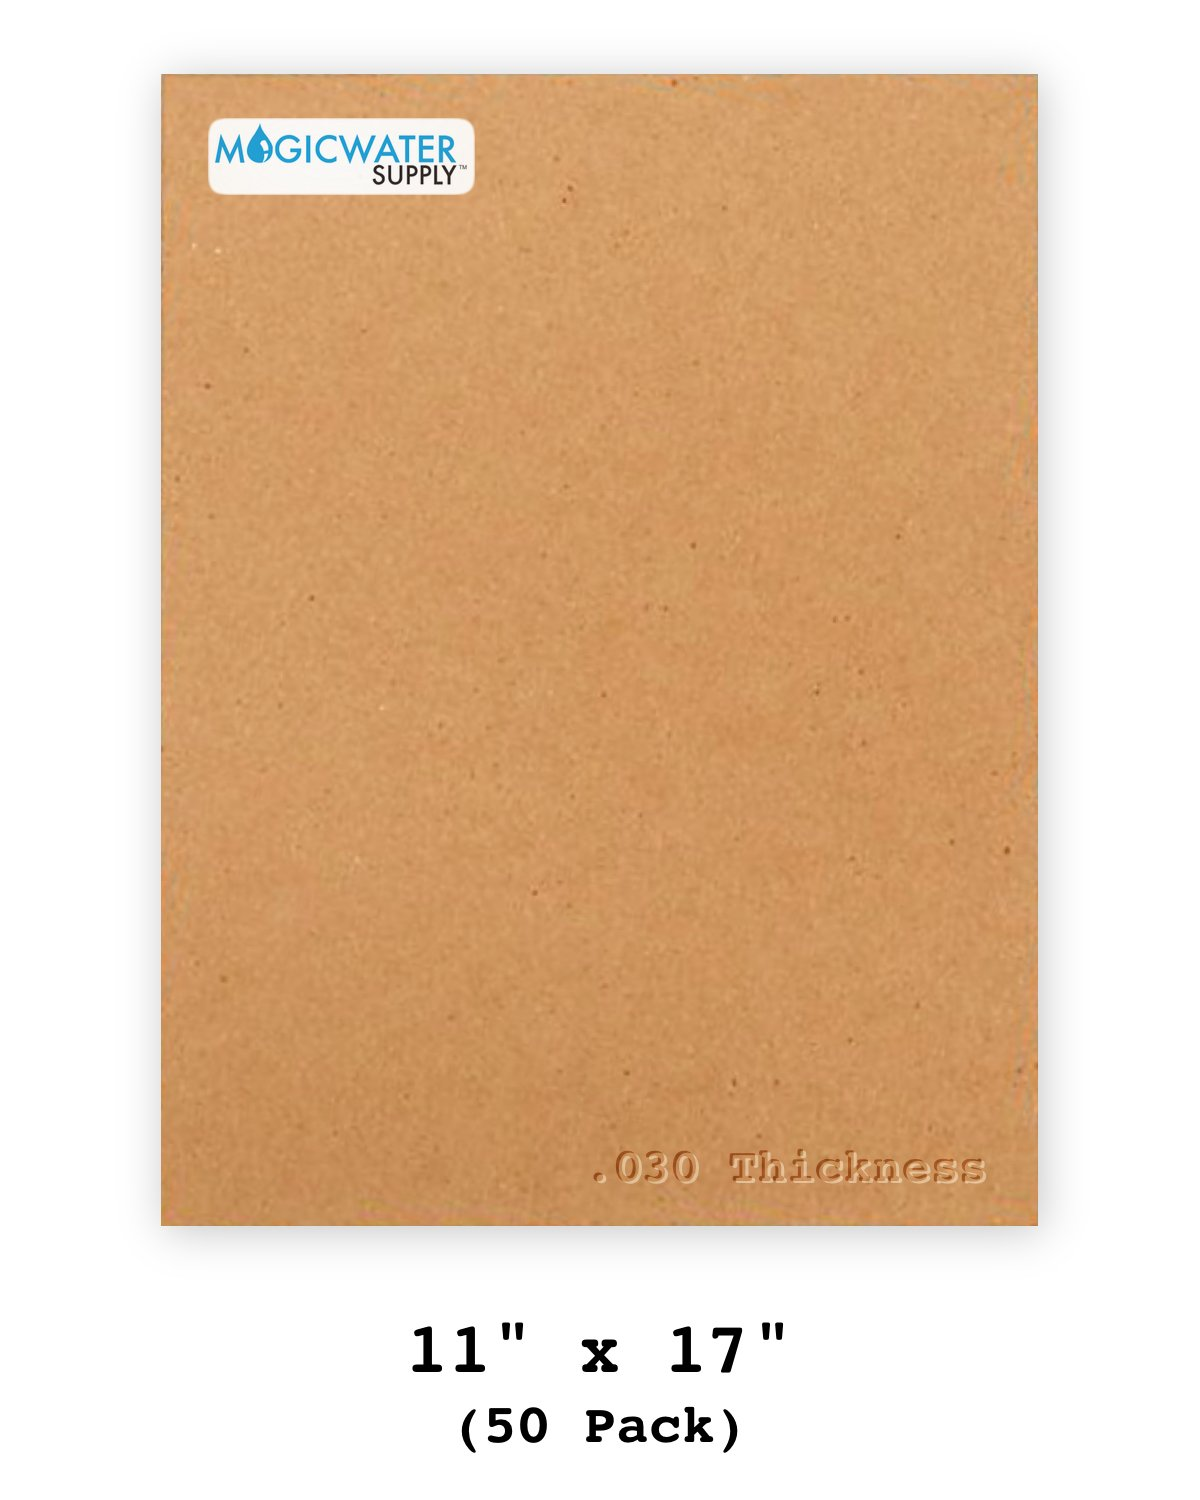 50 Chipboard Sheets 11 x 17 inch - 30pt (Point) Medium Weight Brown Kraft Cardboard for Scrapbooking & Picture Frame Backing (.030 Caliper Thick) Paper Board | MagicWater Supply by MagicWater Supply